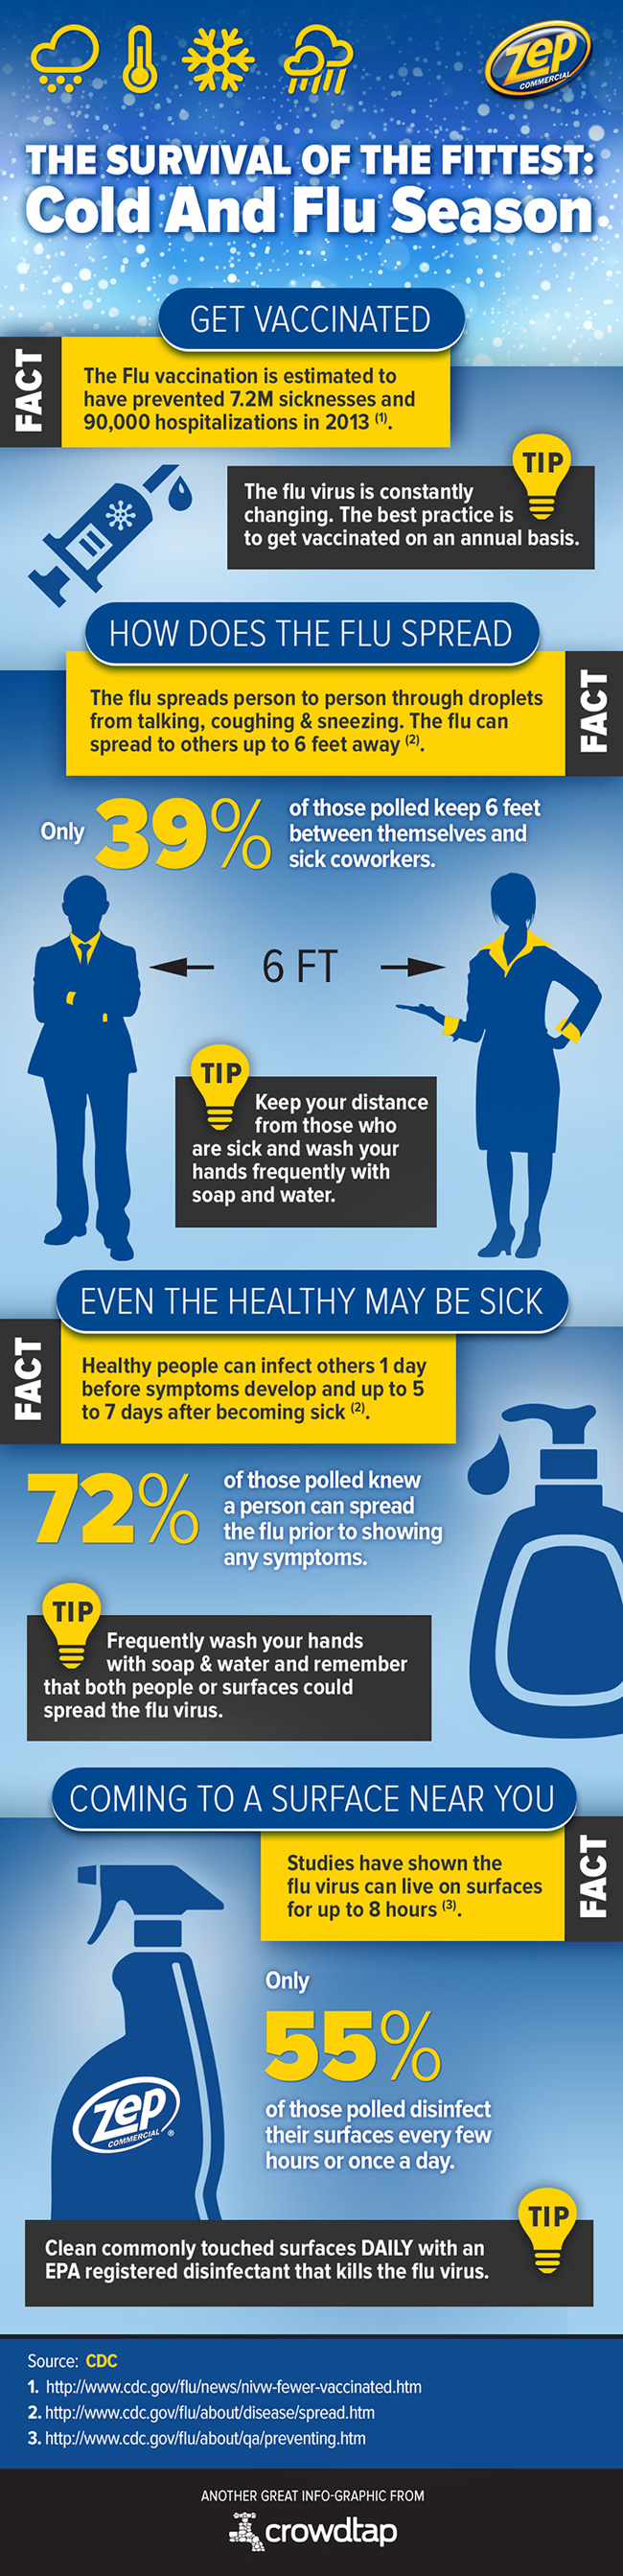 Zep Cold & Flu Season Infographic #ZepSocialstars